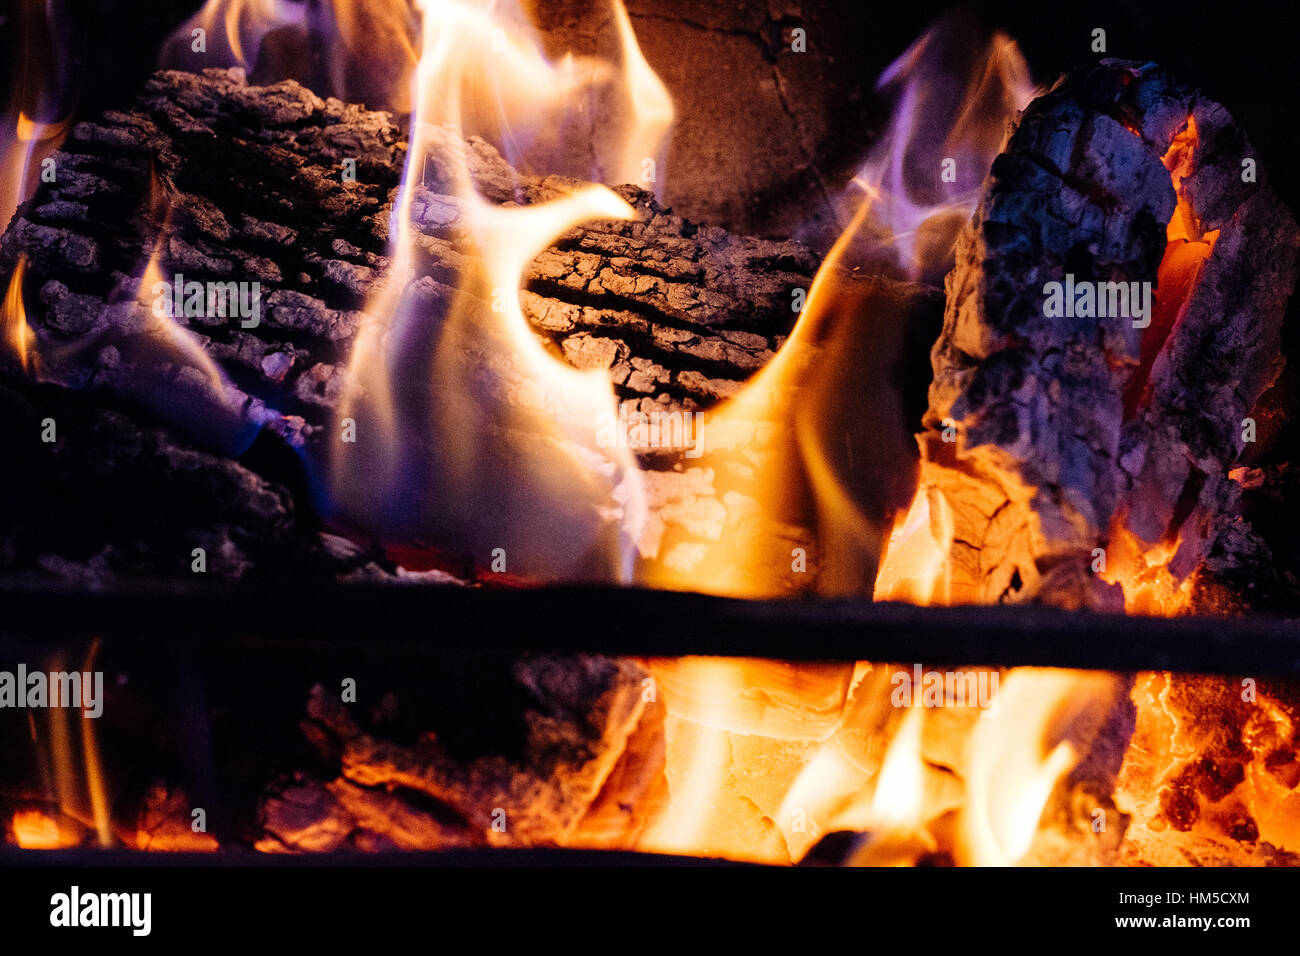 A close up fireplace showing logs and coal burning - Stock Image